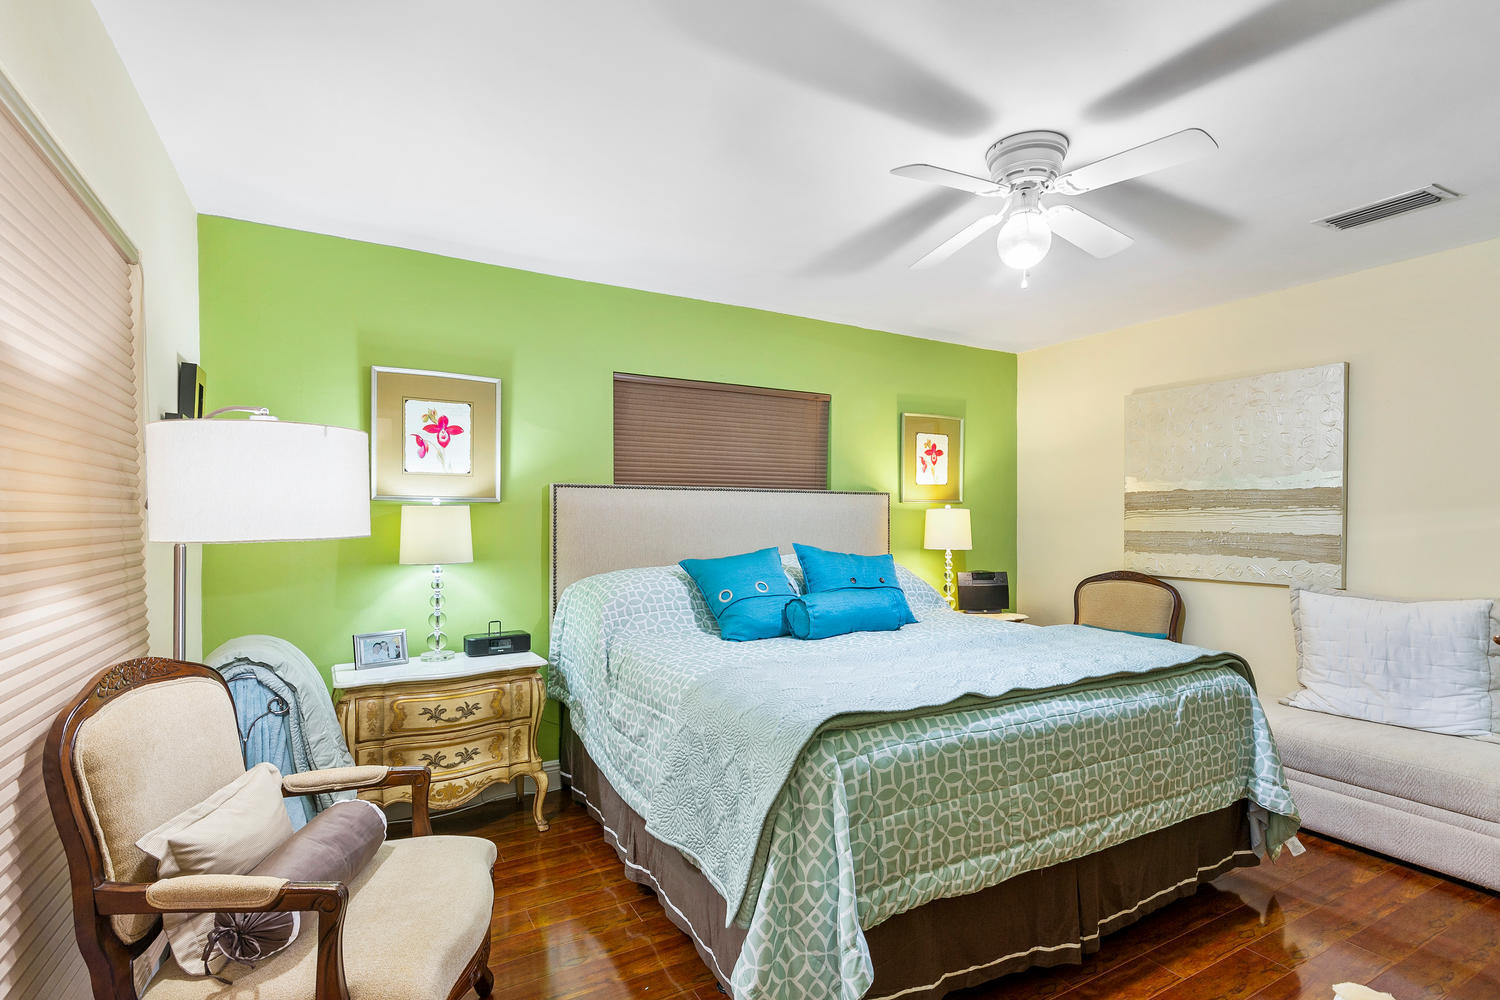 7204 NW 71st St-large-025-028-Bedroom-15